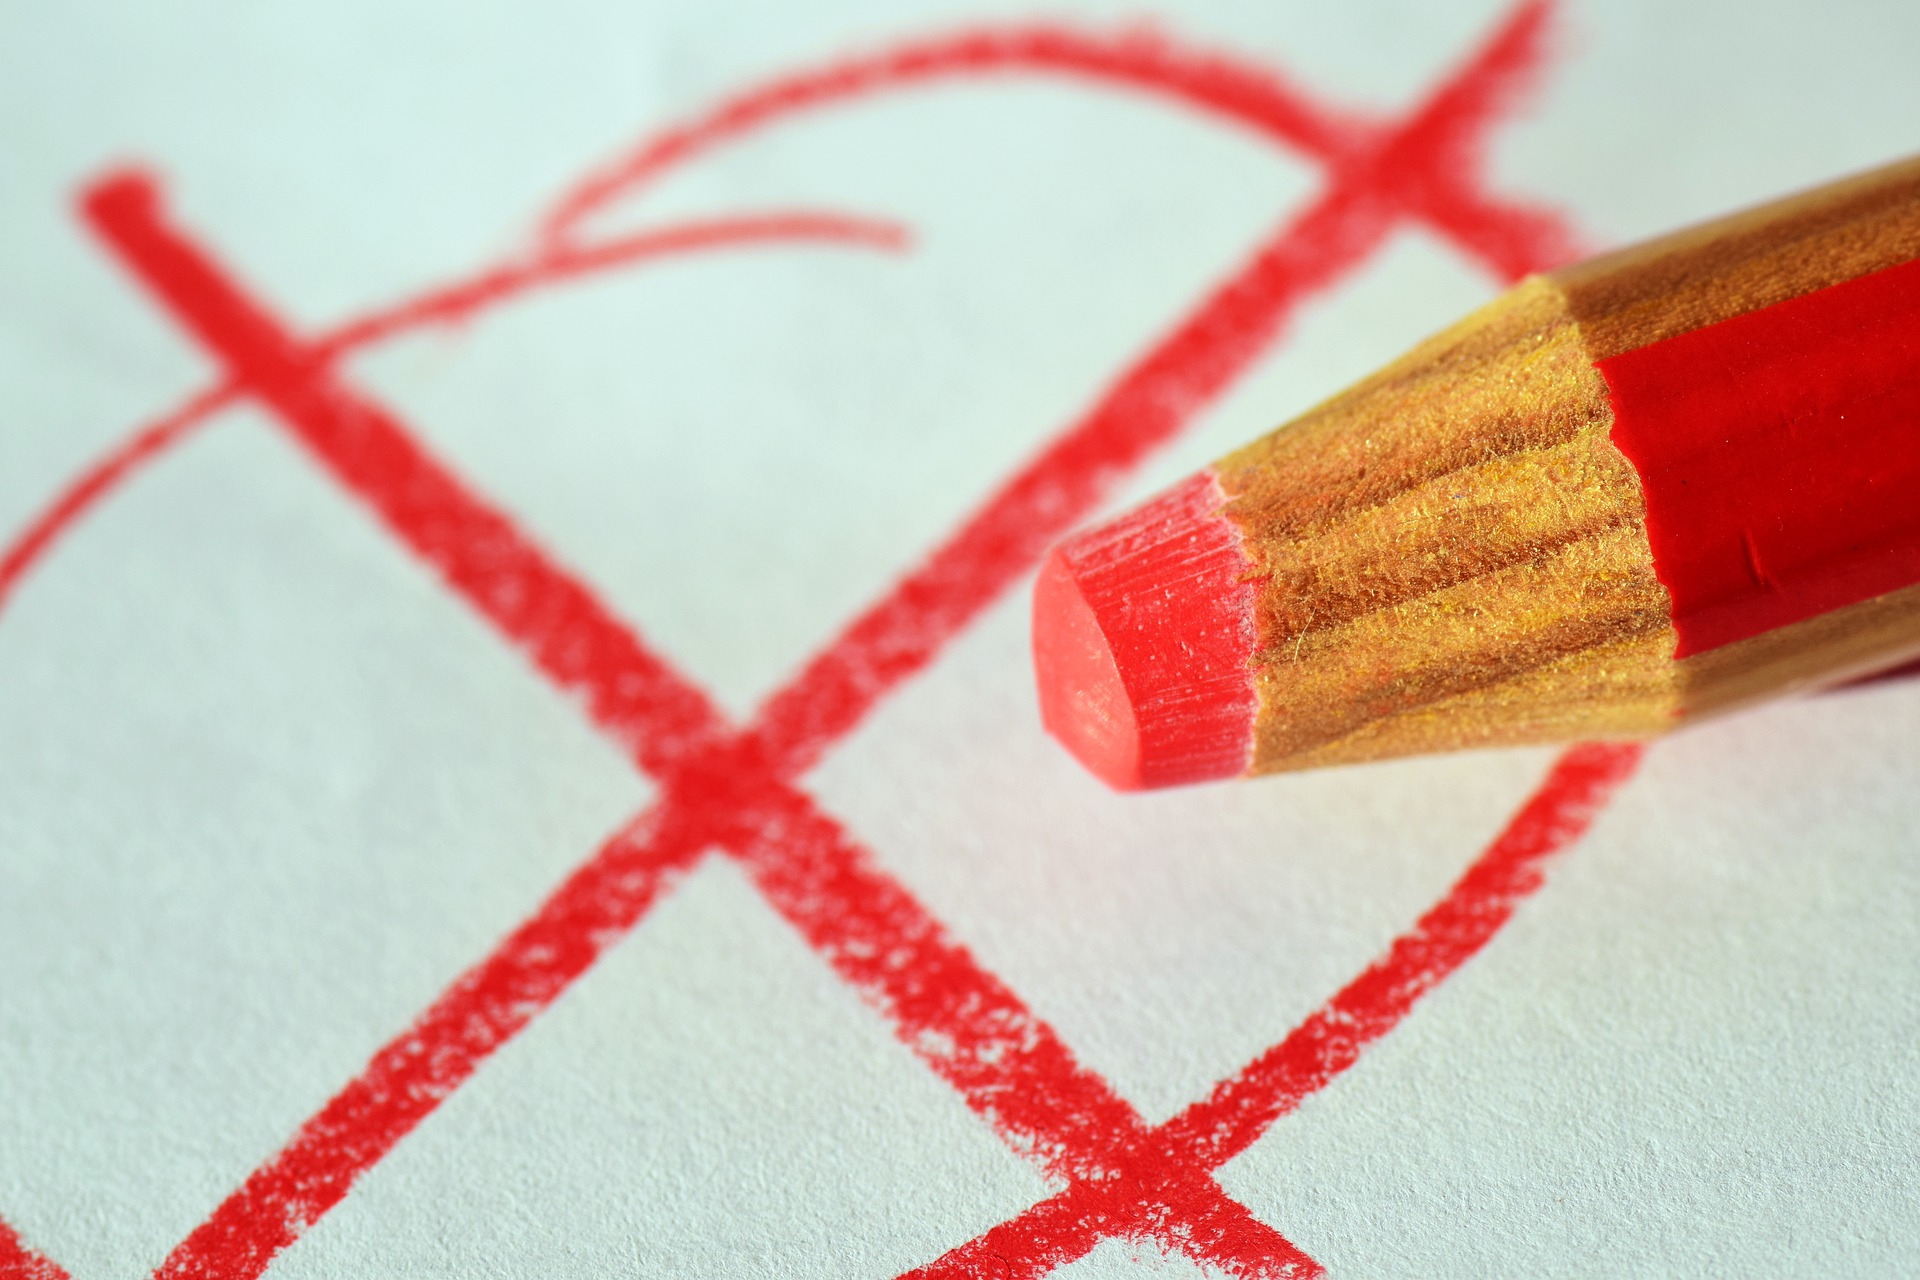 Red pencil marking an X over items that do not belong in a functional policy.